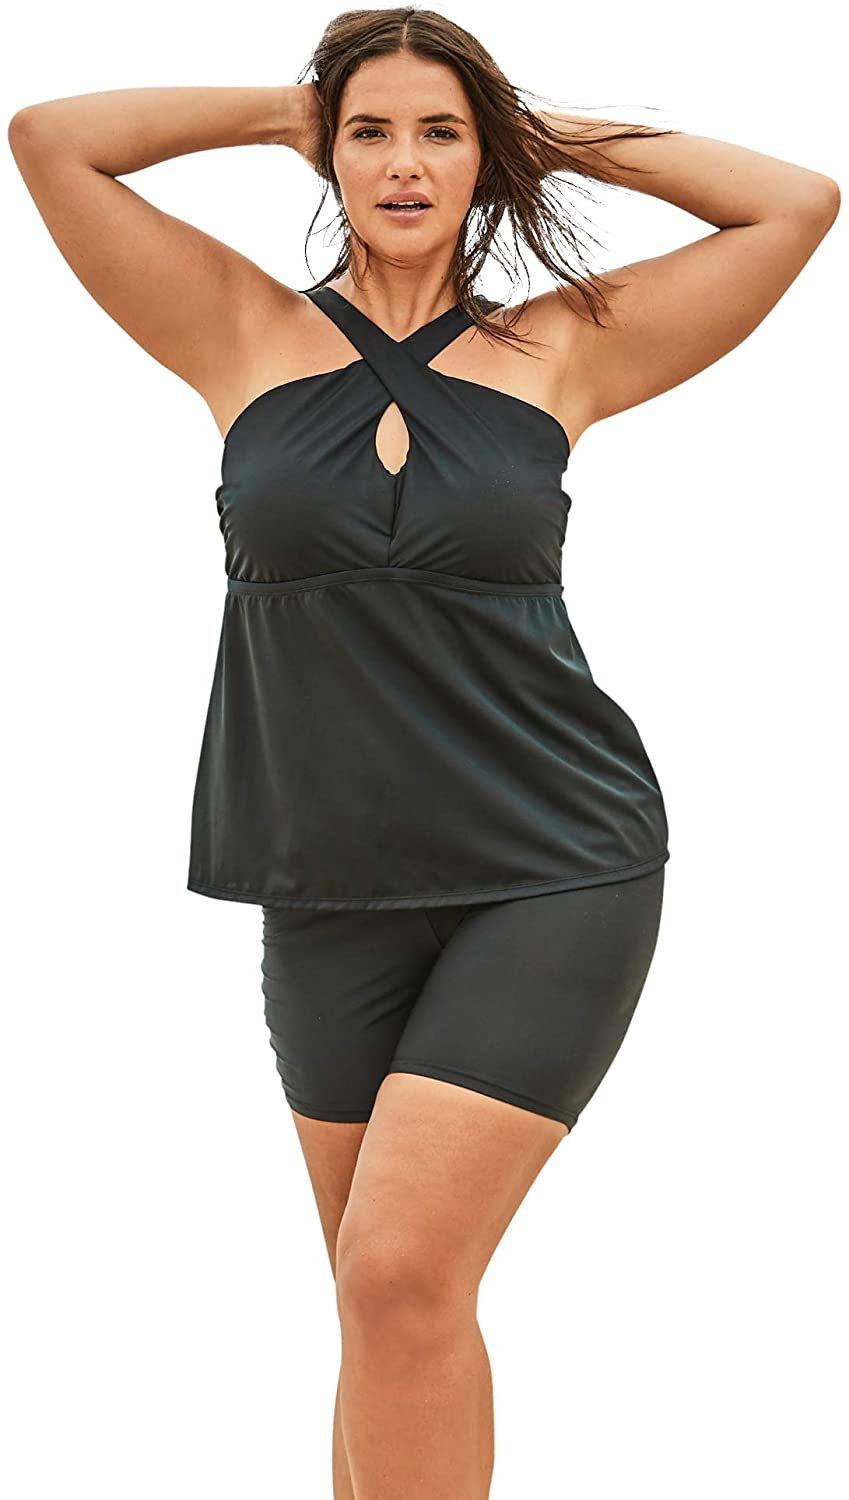 Swimsuits For All Womens Plus Size Crossover Tankini Top